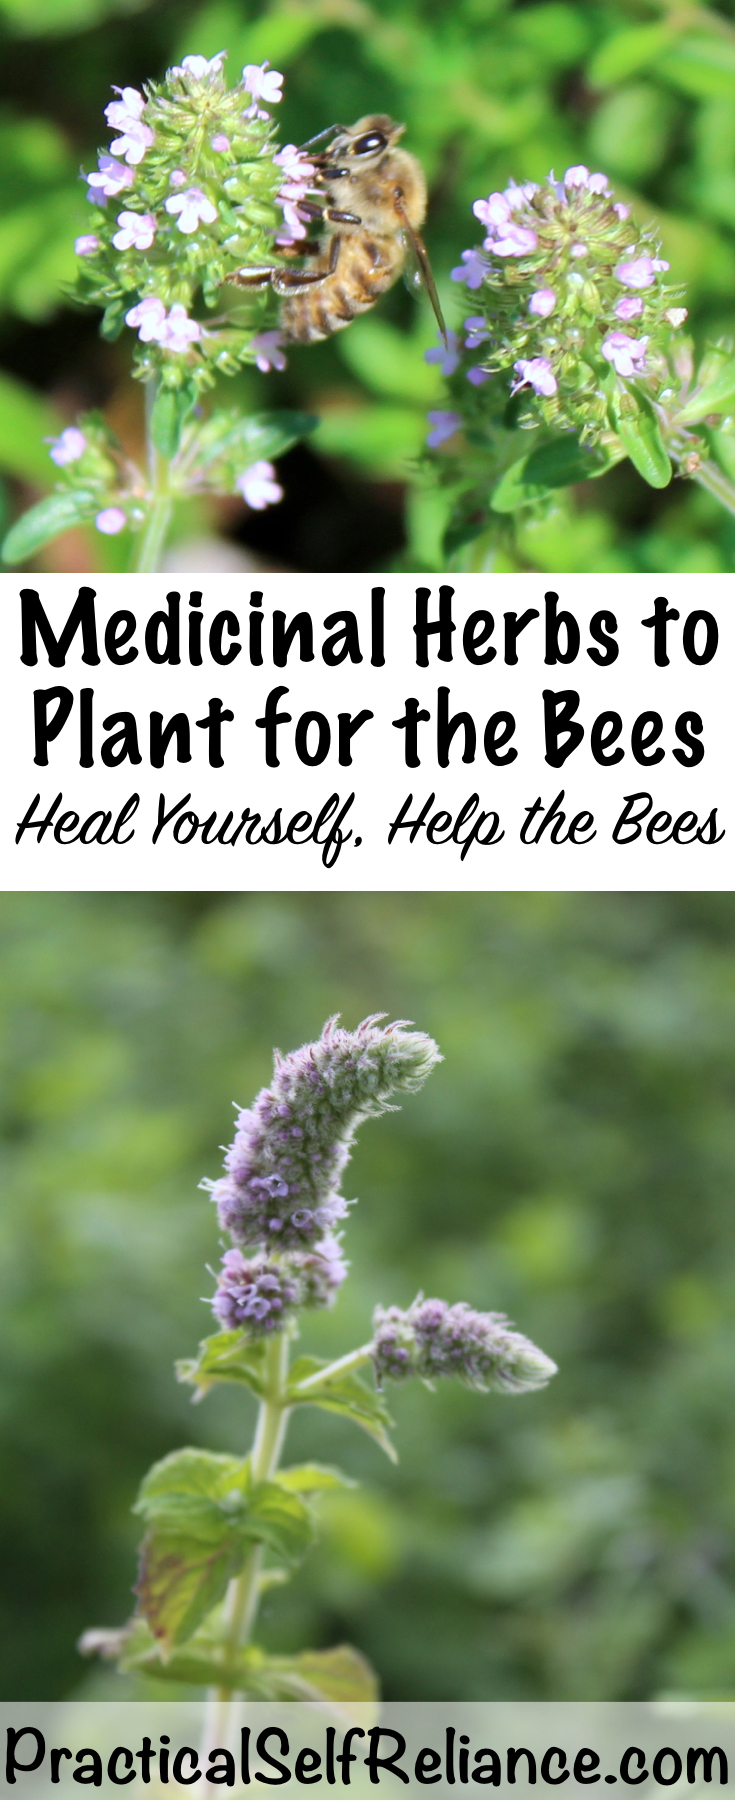 Medicinal Herbs to Plant for the Bees - Heal Yourself, Help the Bees